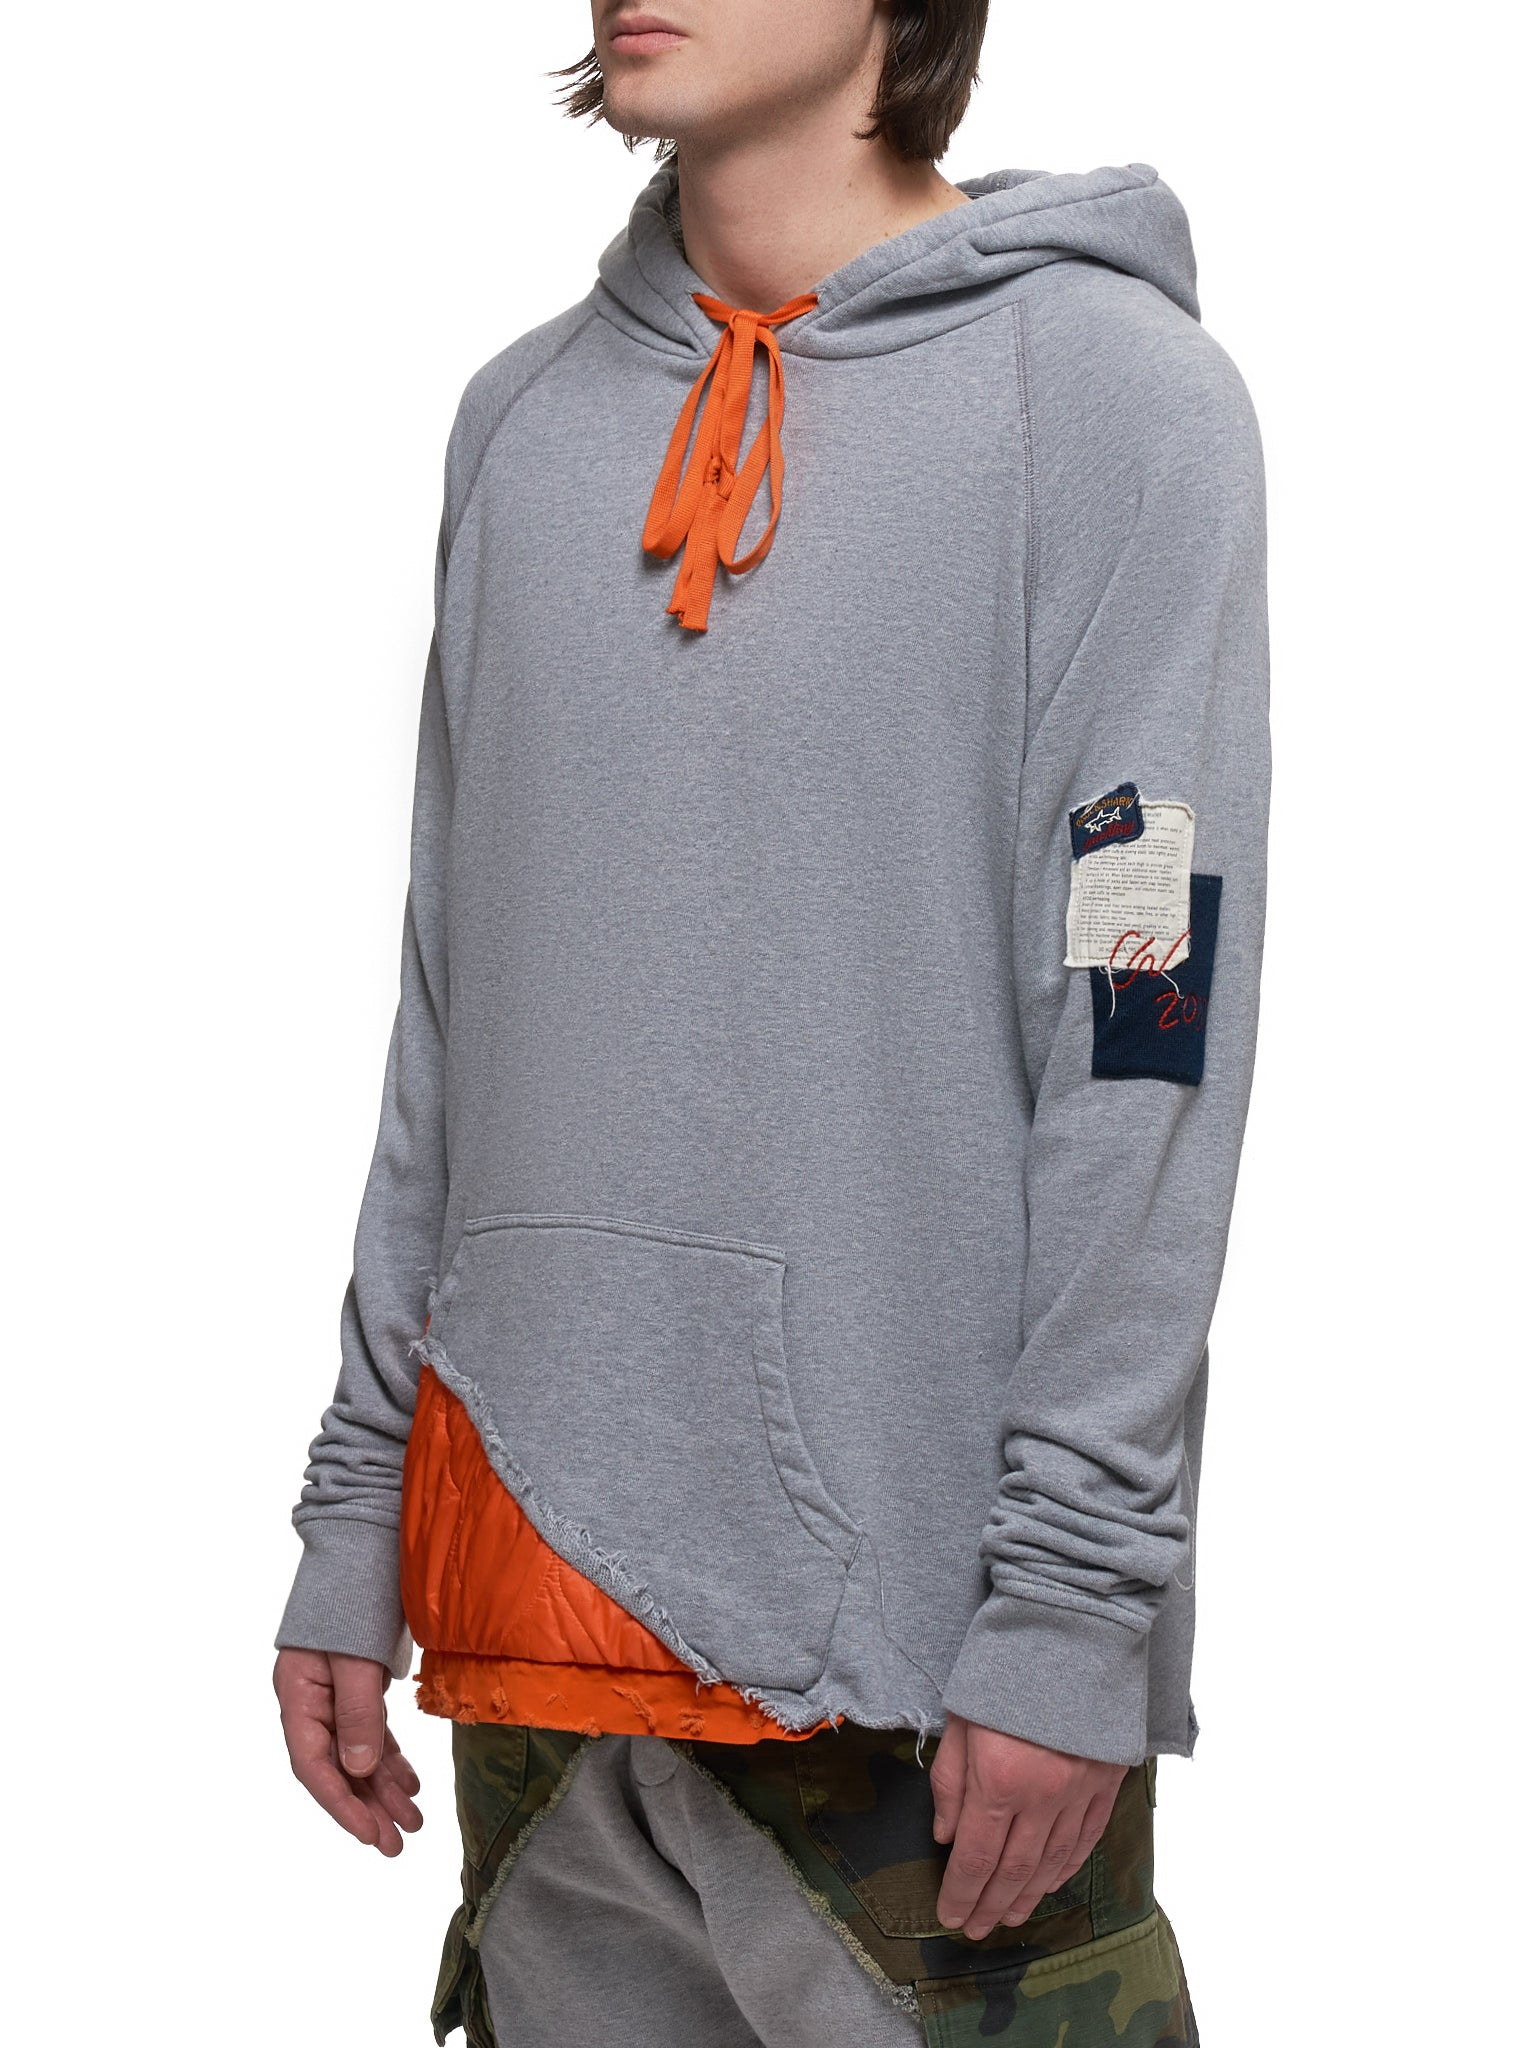 Paul & Shark by Greg Lauren Hoodie - Hlorenzo Side